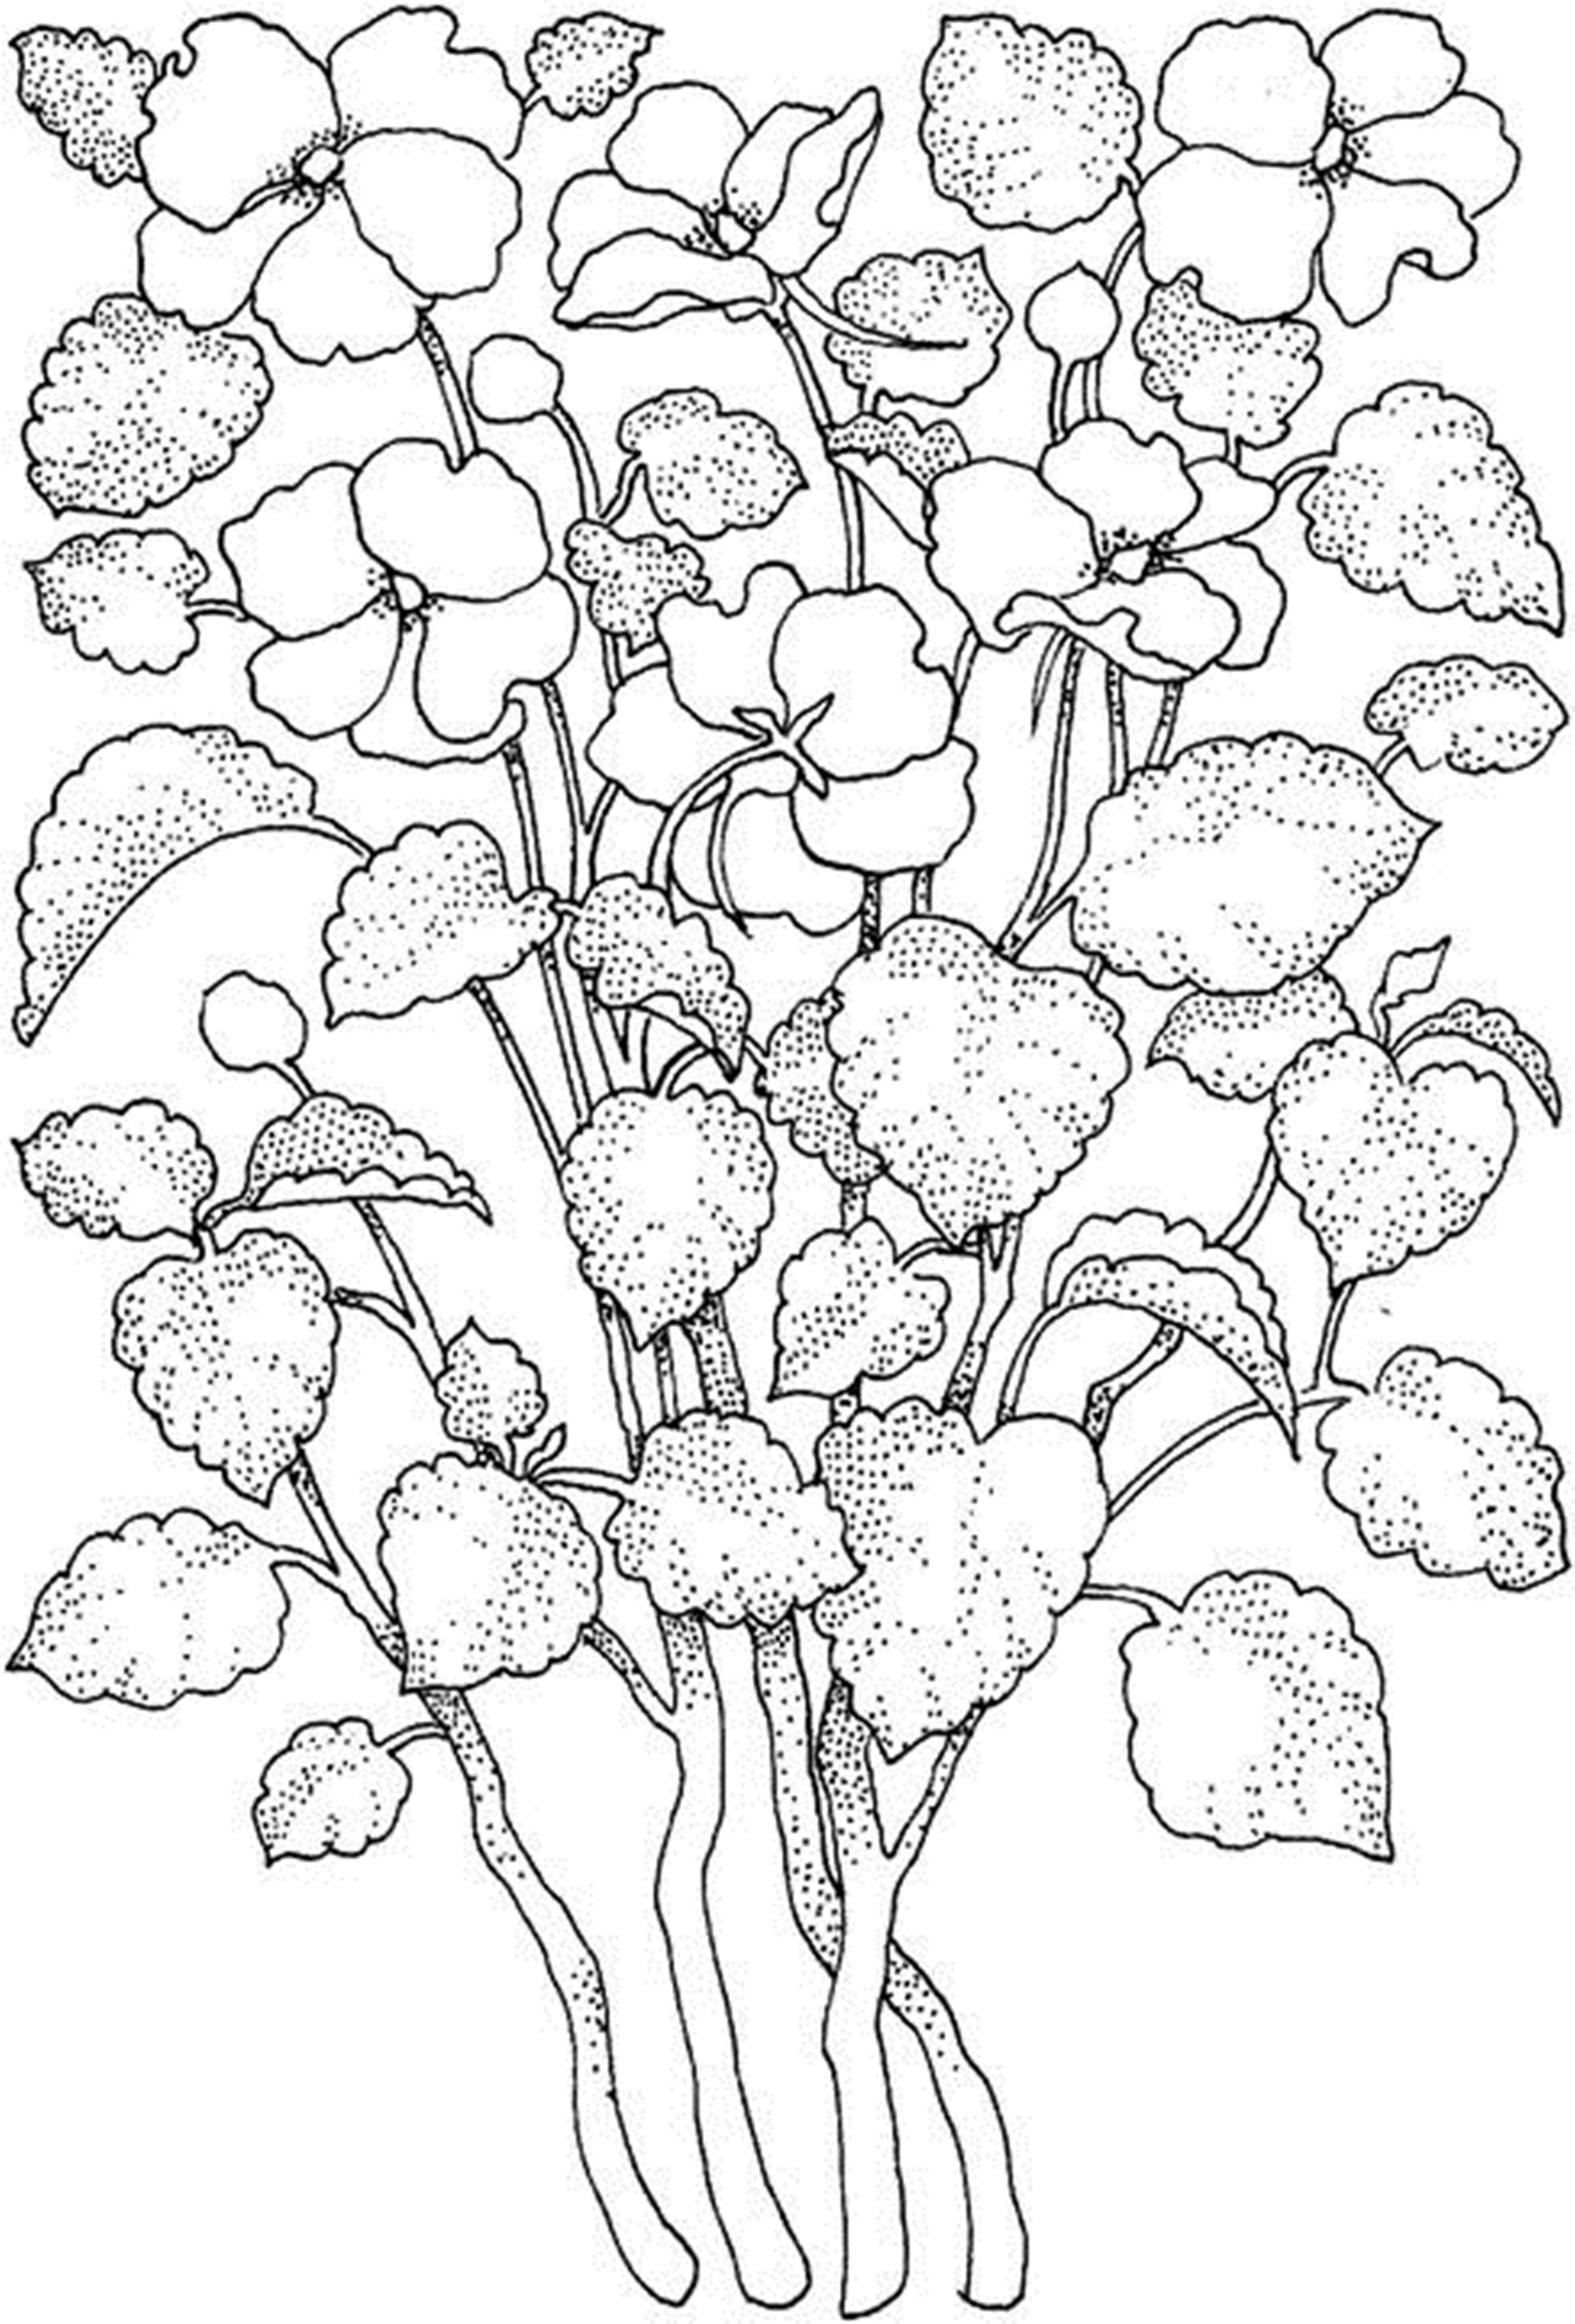 free coloring pages of flowers free printable flower coloring pages for kids best coloring free pages of flowers